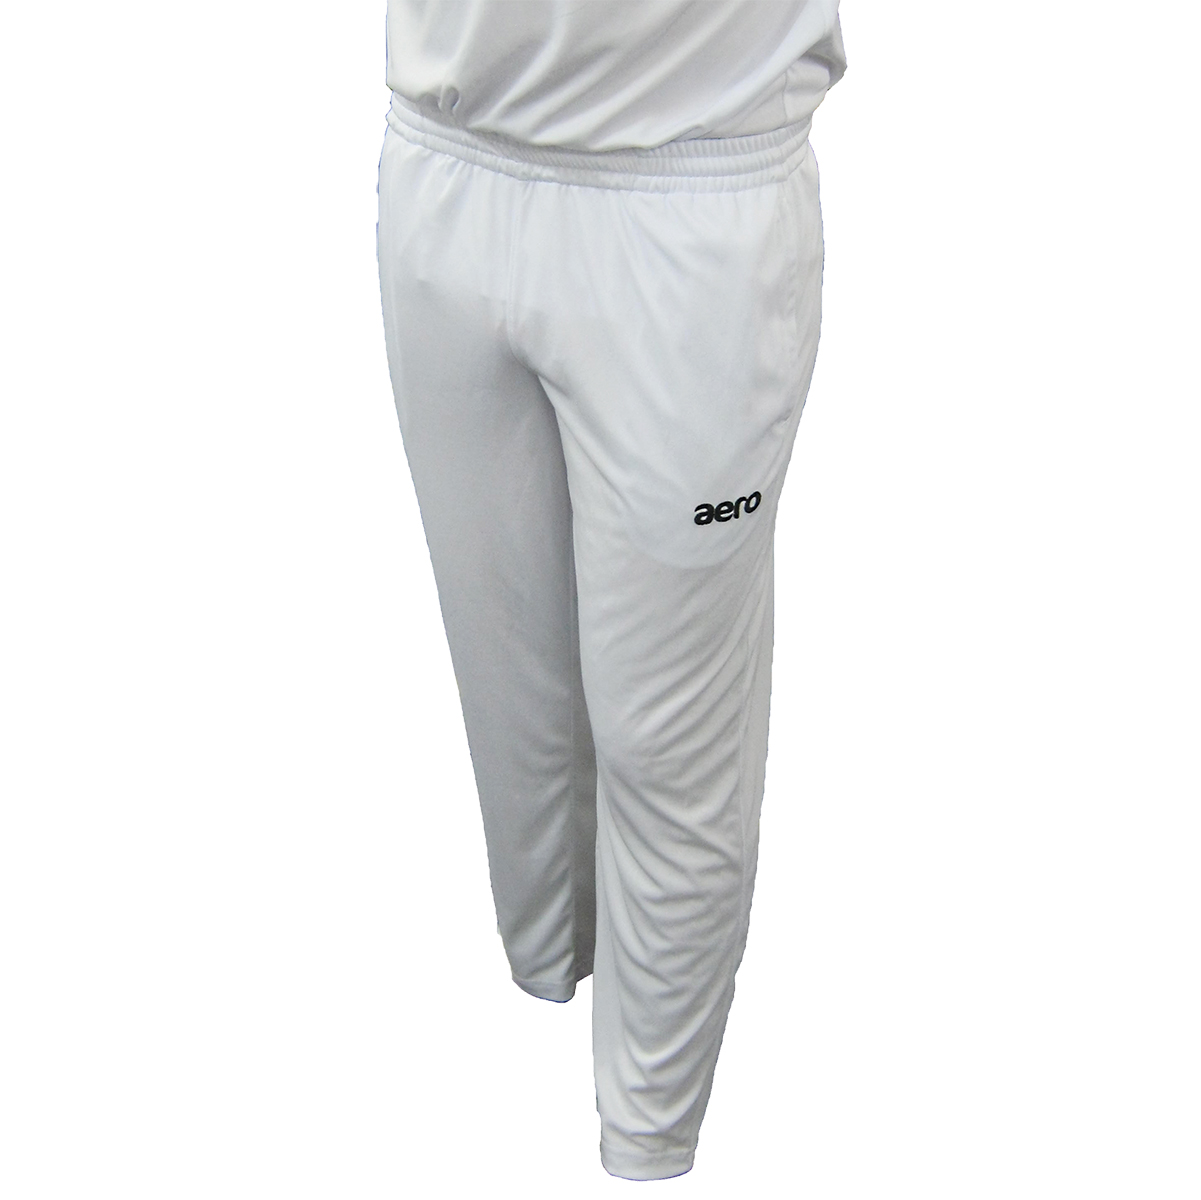 1610-Aero-Clothing-Cricket-Trousers-Web